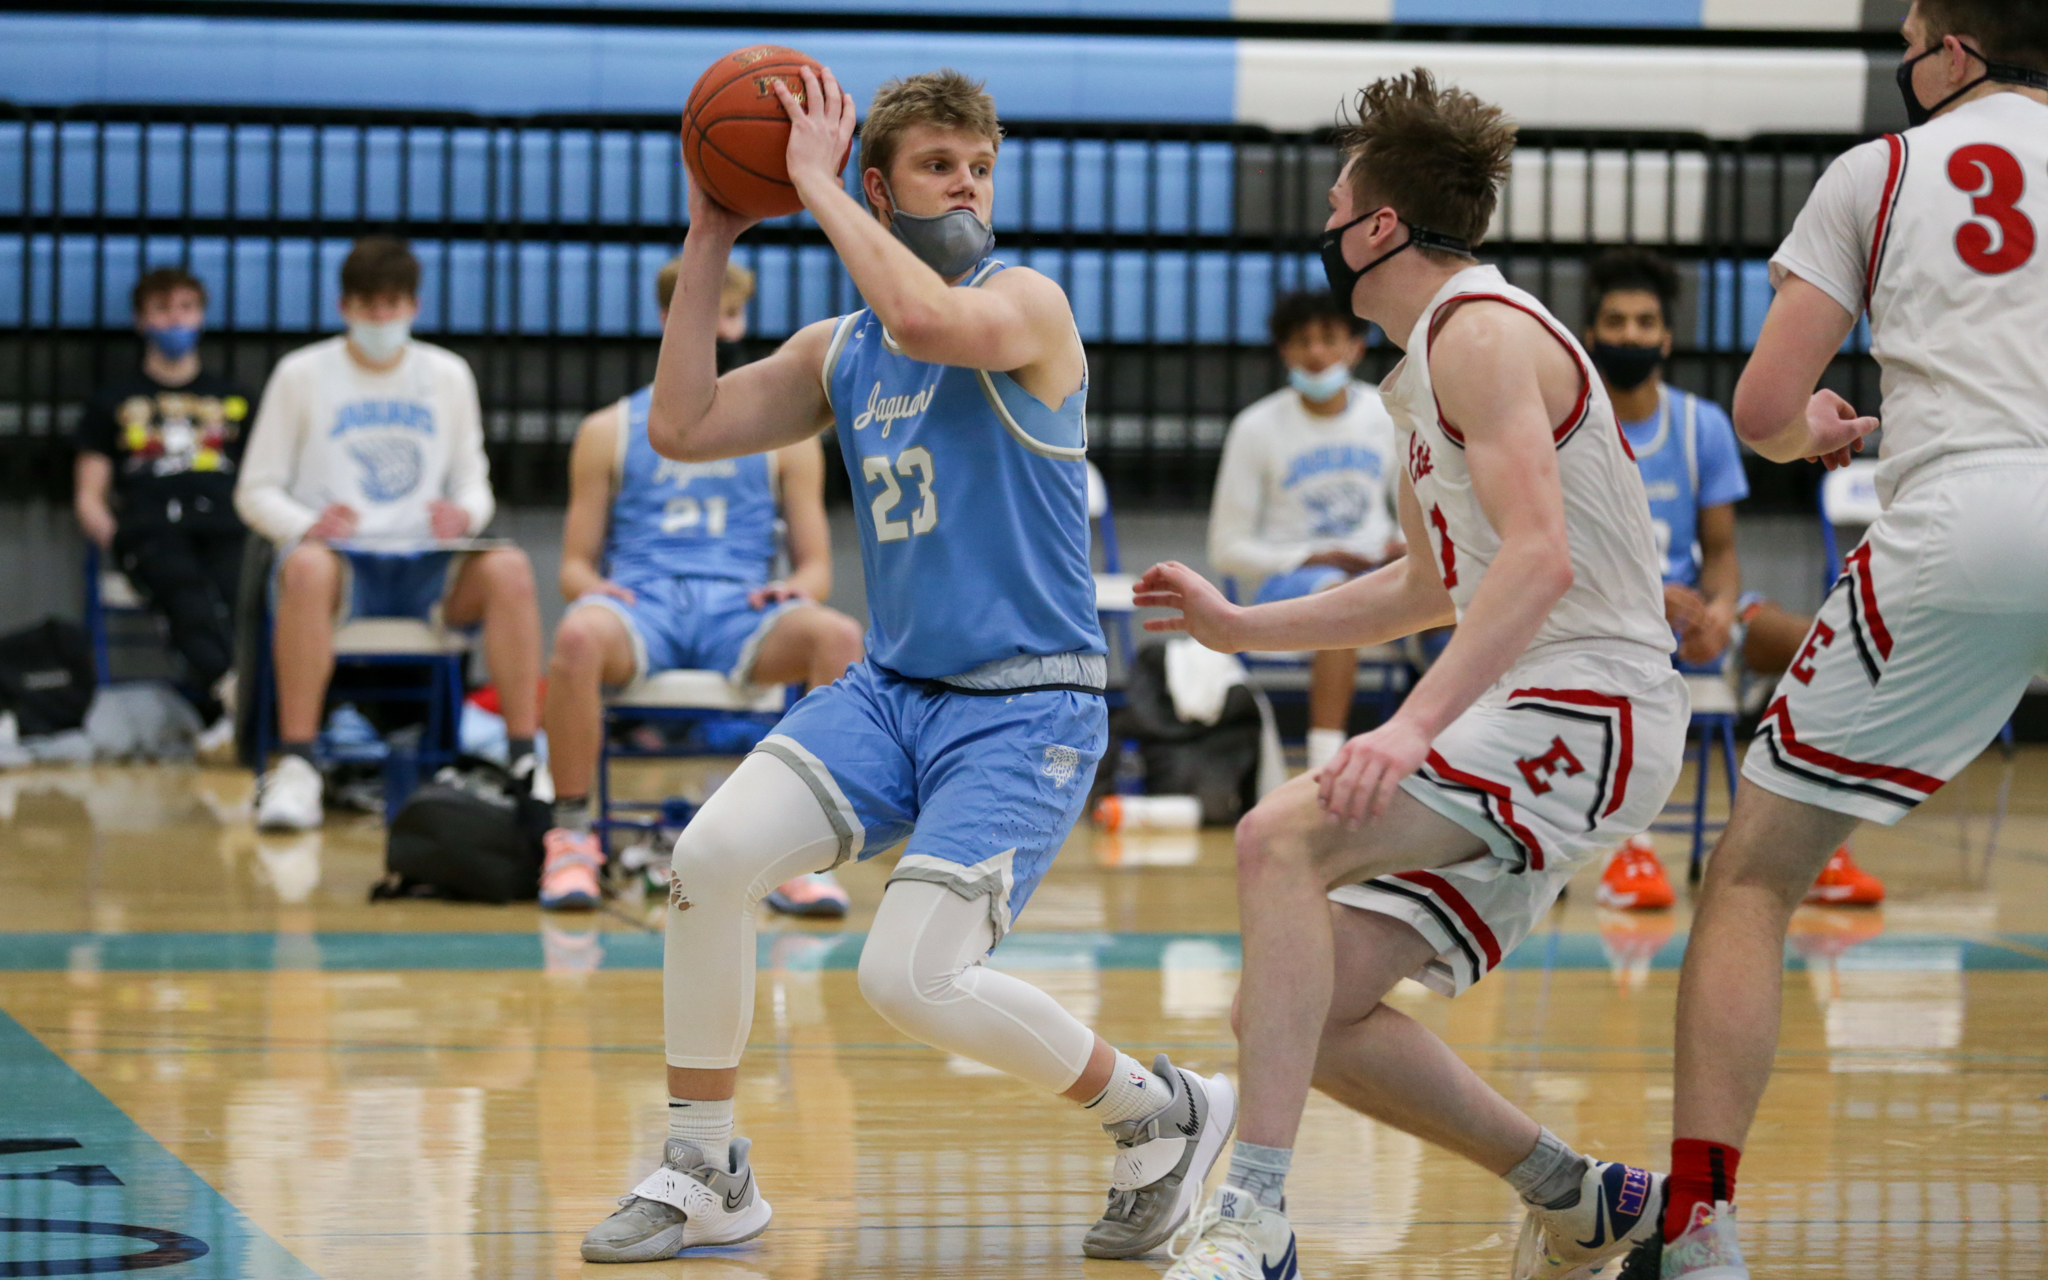 Bloomington Jefferson's Sam Wanzek (23) looks for room under the basket against Duluth East Thursday night. Wanzek had 15 points in the Jaguars' 63-54 loss to the visiting Greyhounds. Photo by Jeff Lawler, SportsEngine